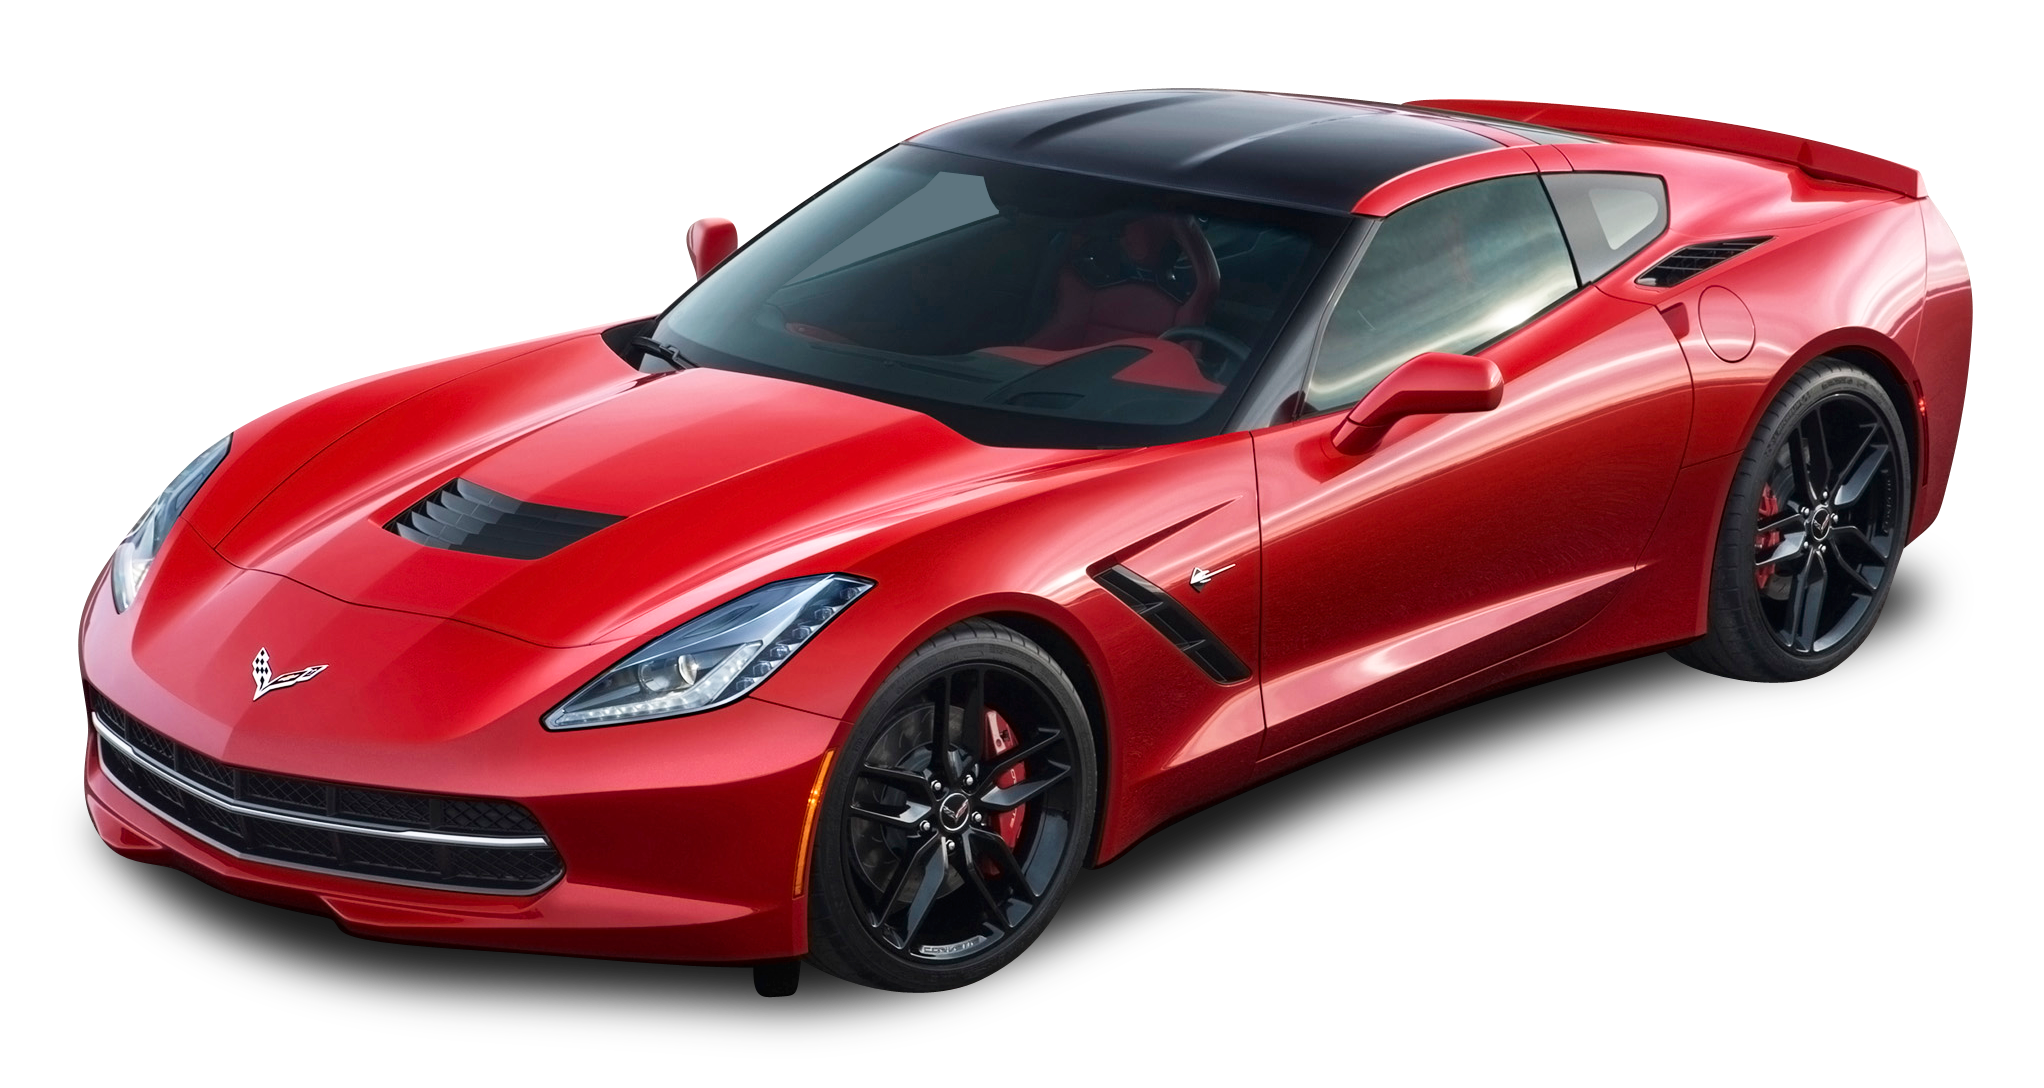 graphic freeuse stock Corvette stingray clipart. Red chevrolet top view.